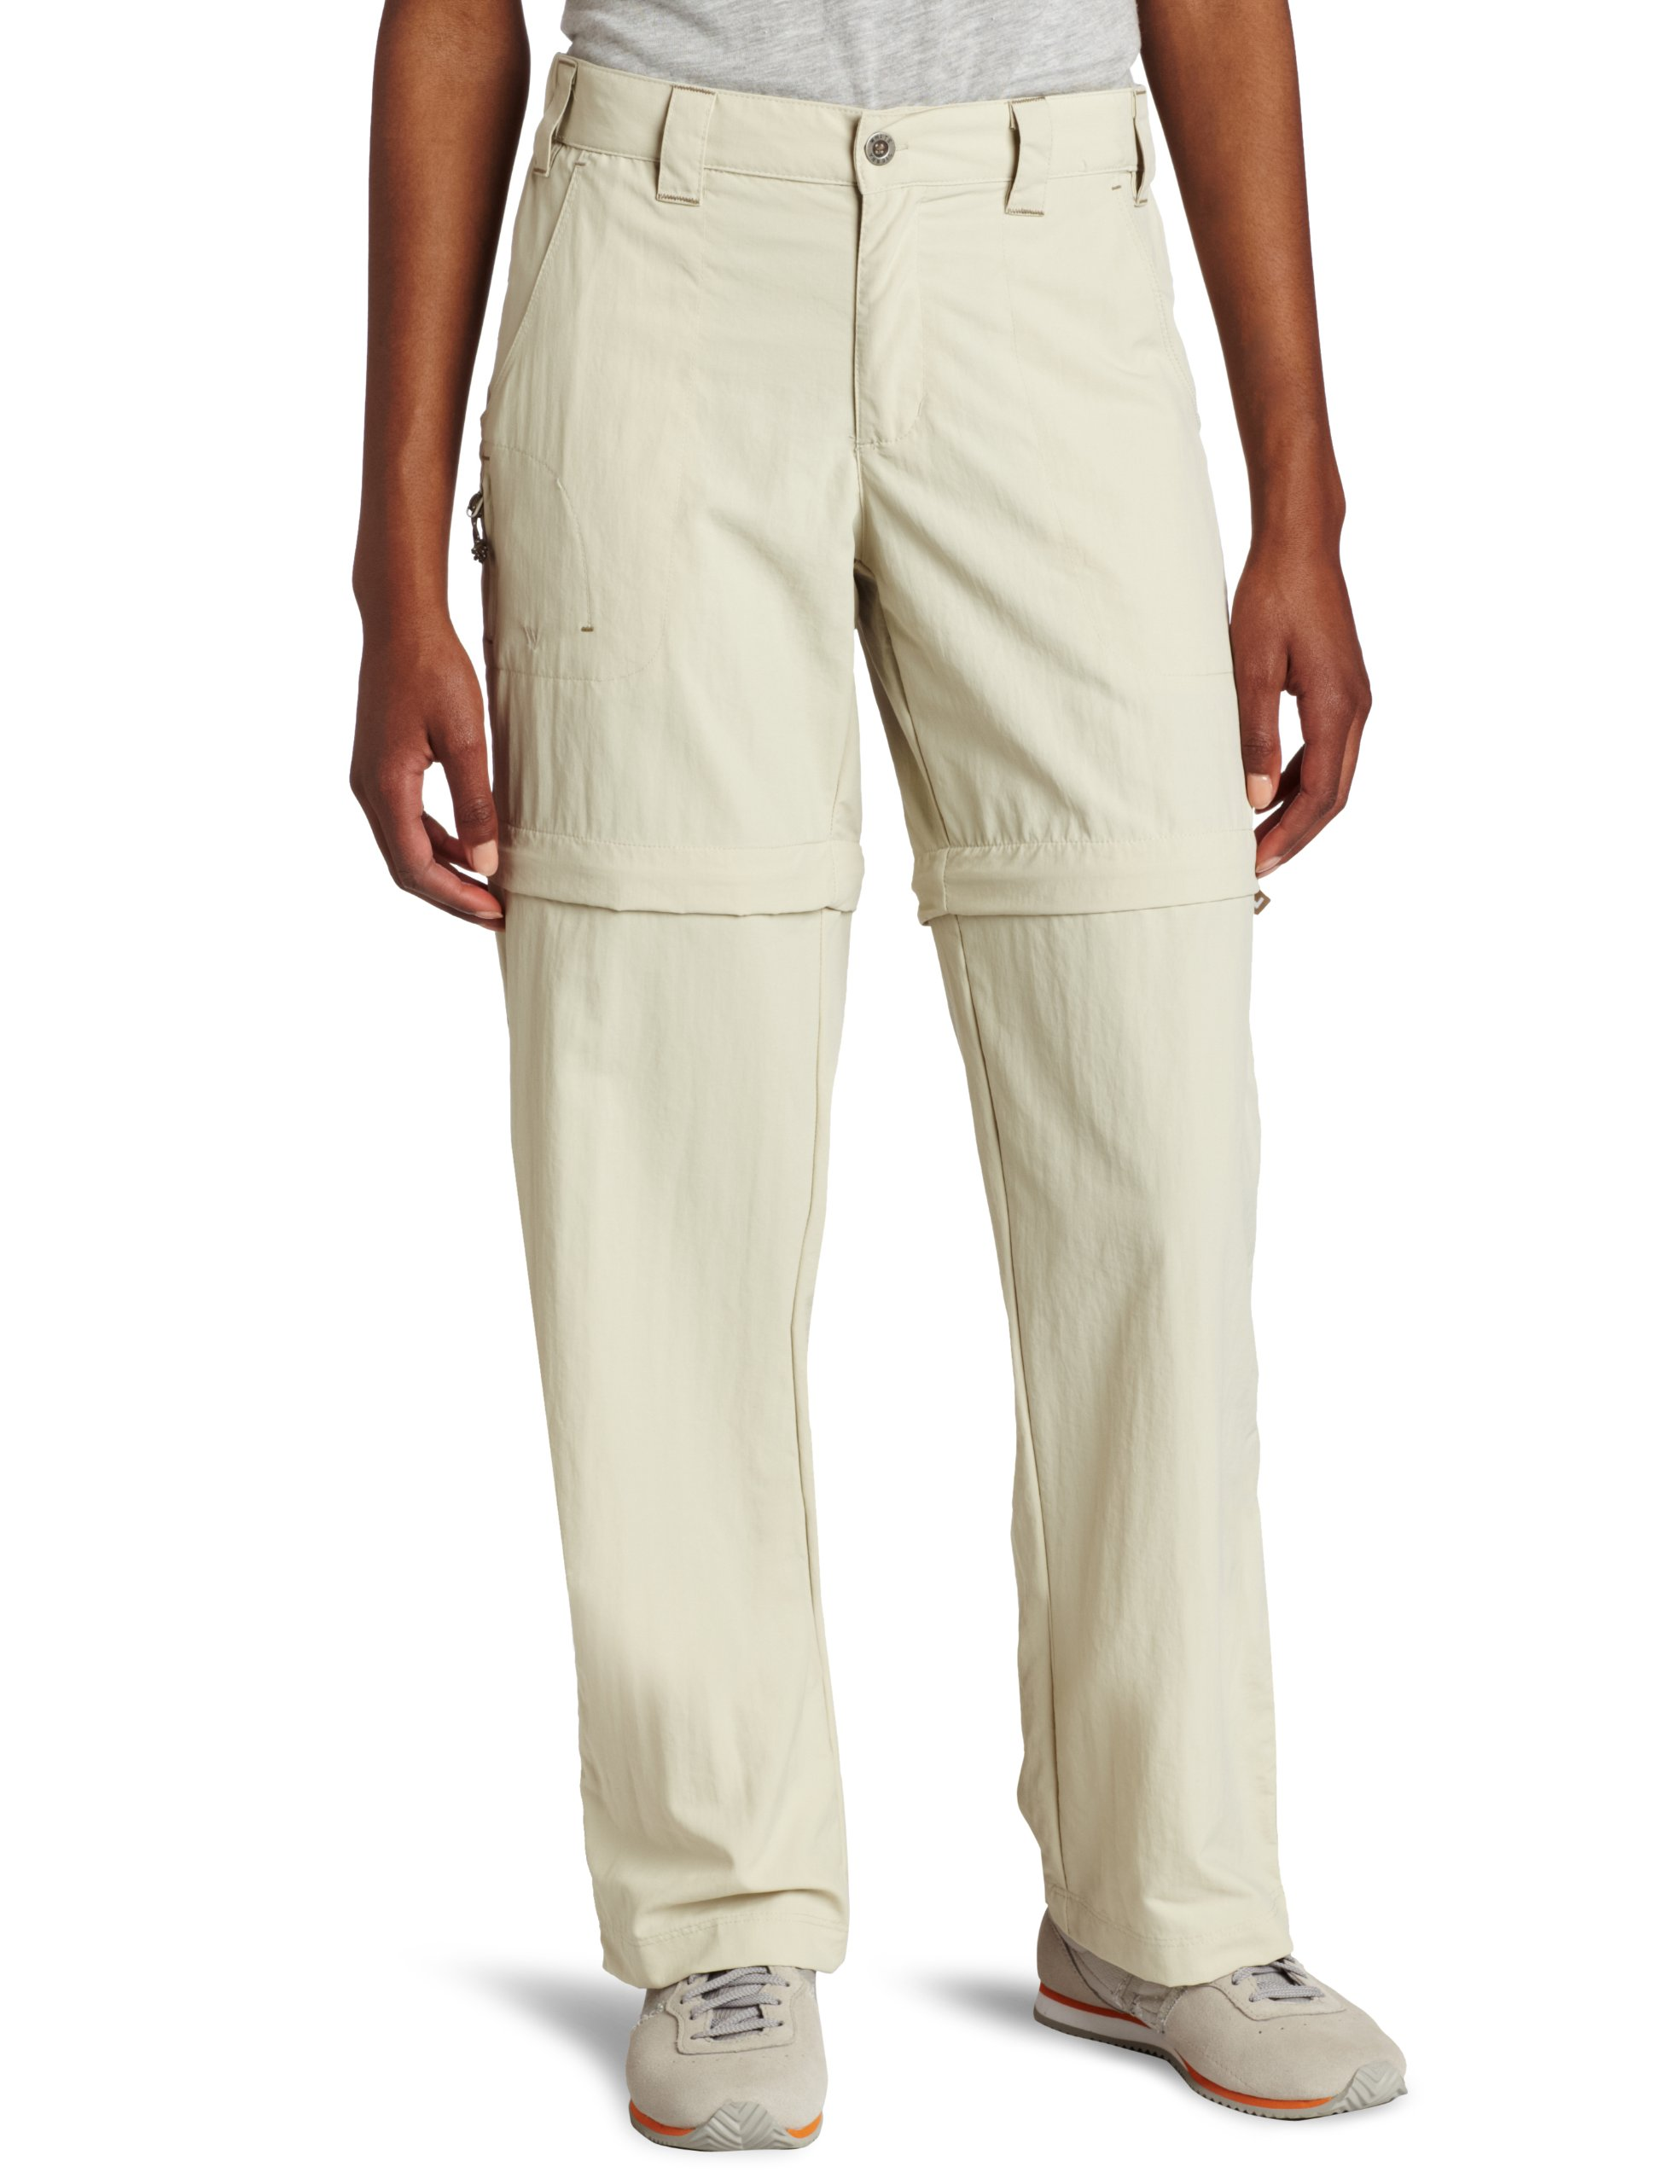 White Sierra Women's Sierra Point 29-Inch Inseam Convertible Pant, X-Large, Stone